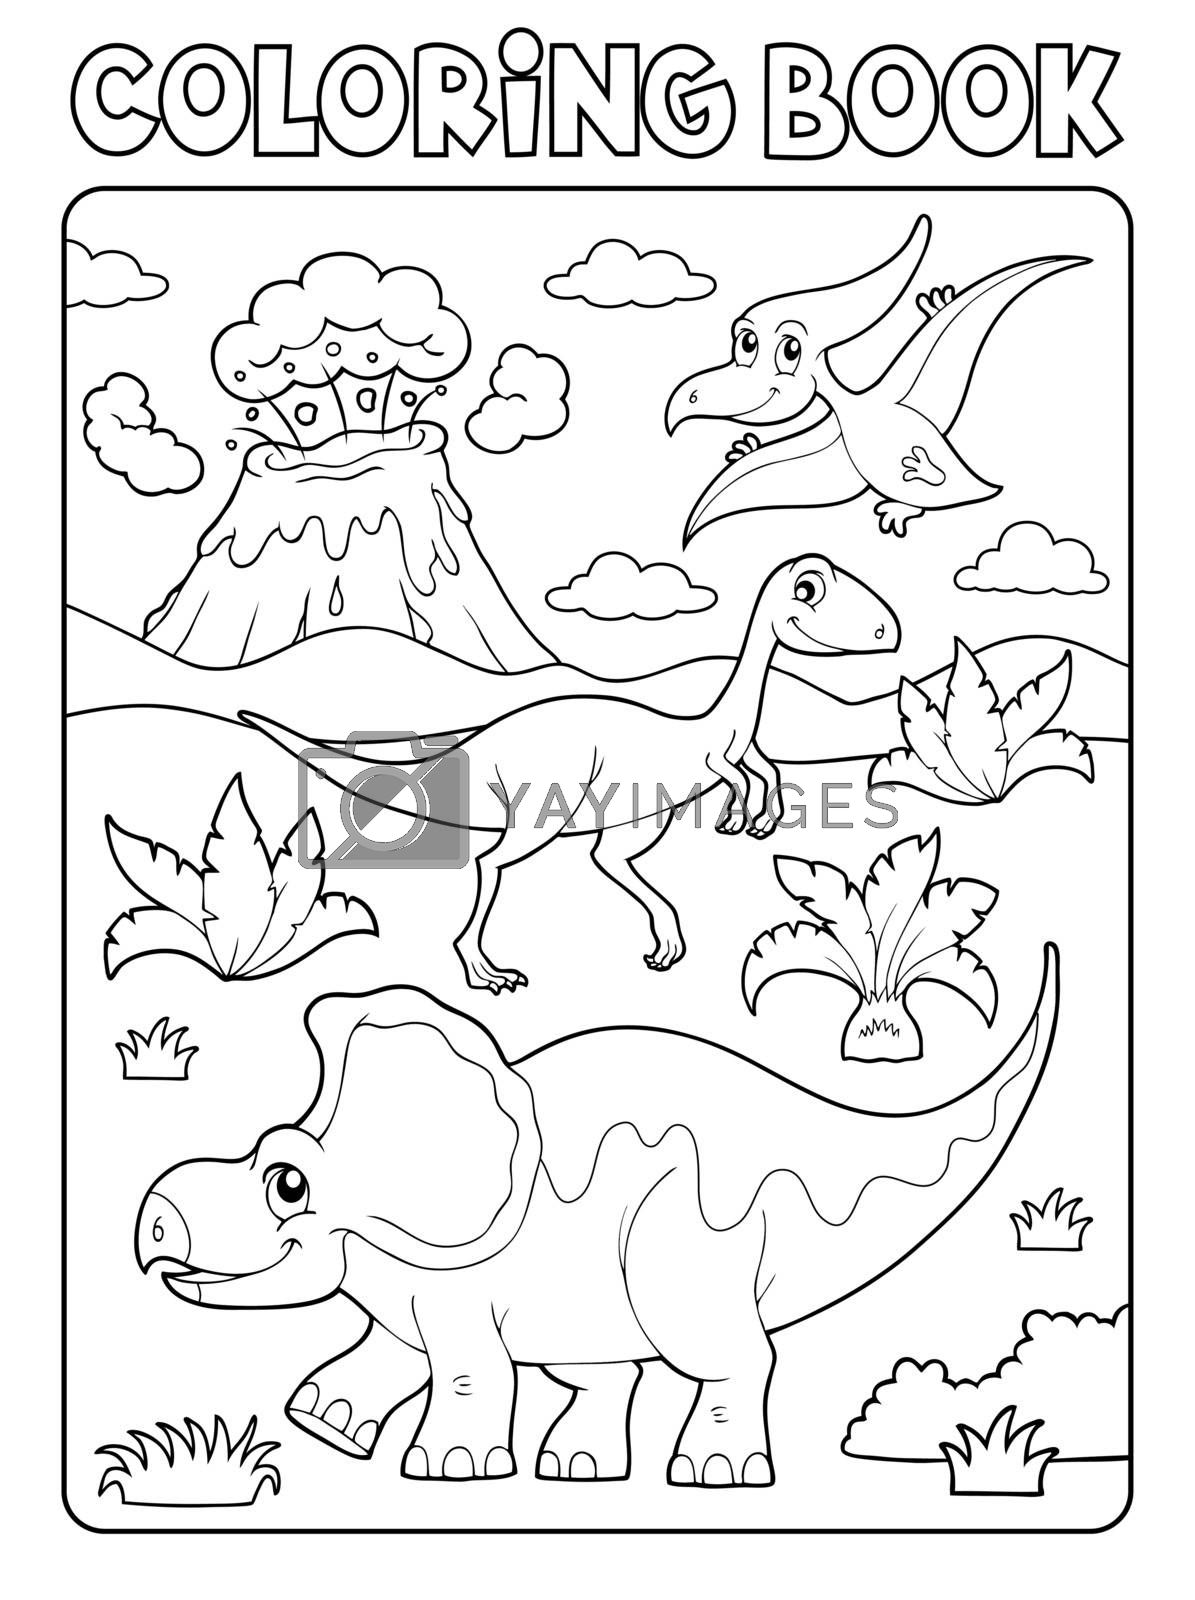 Coloring book dinosaur composition image 2 - eps10 vector illustration.